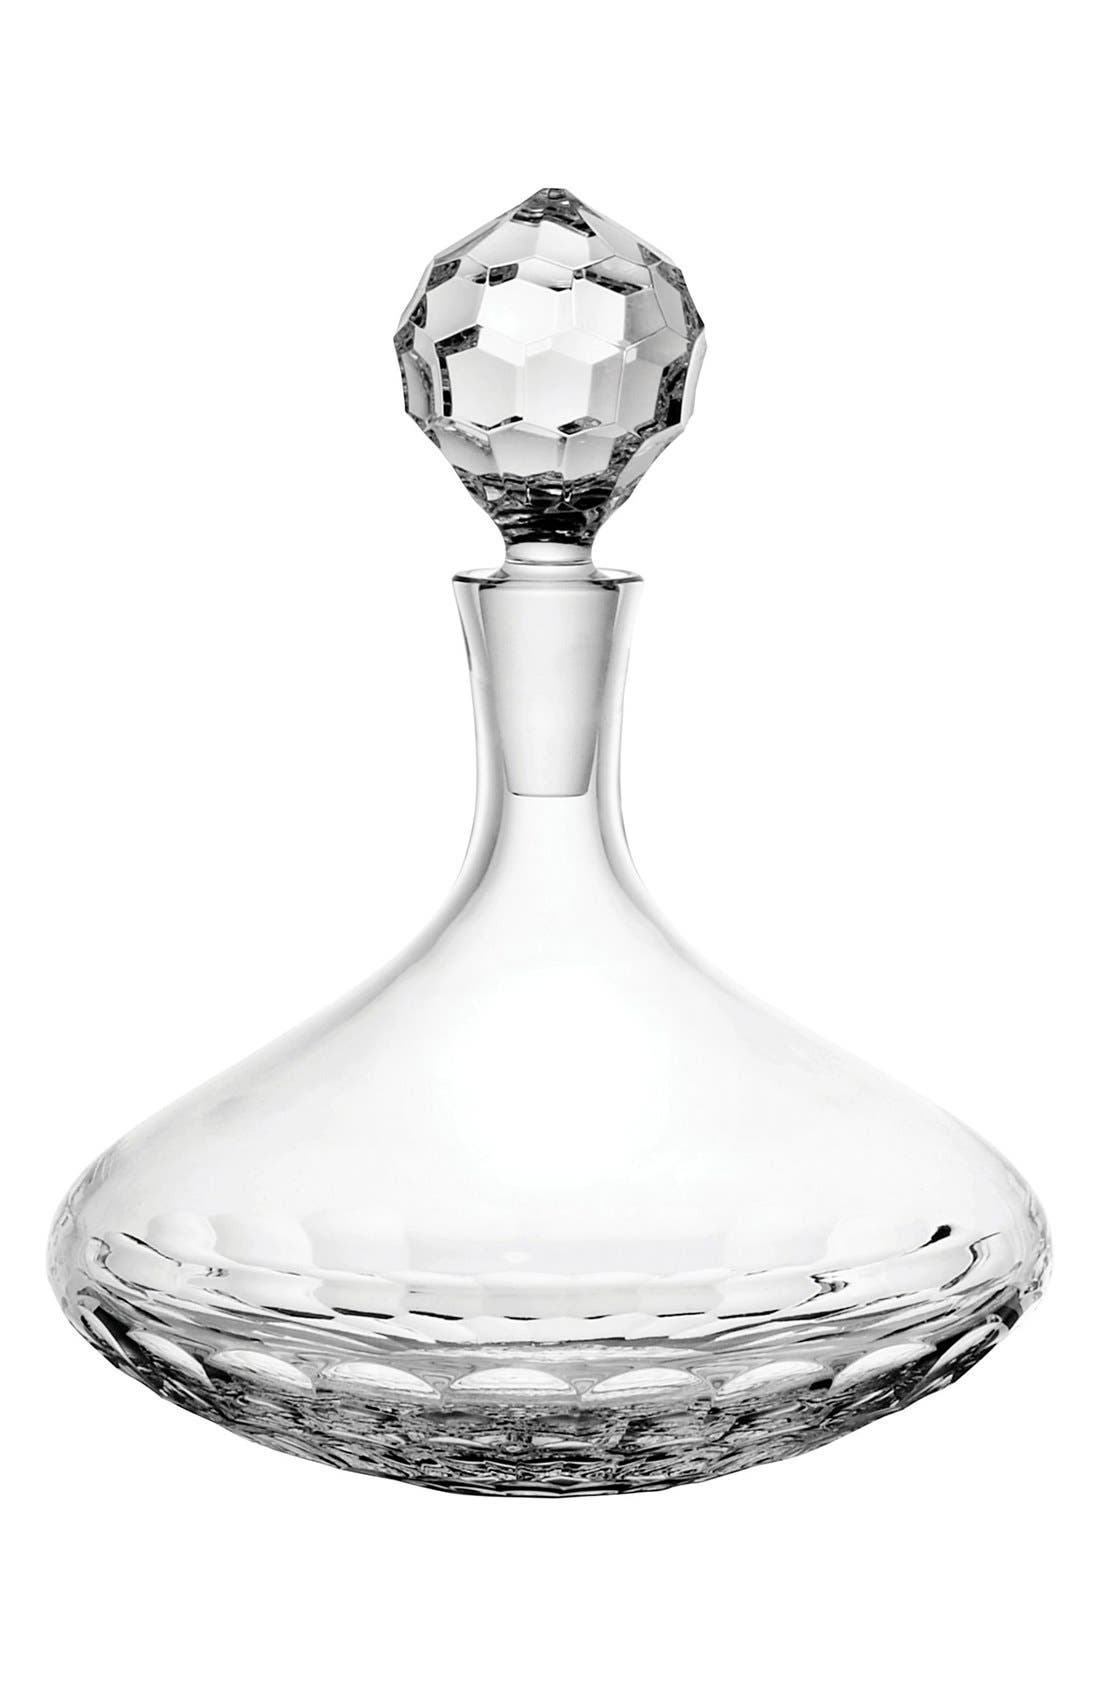 Monique Lhuillier Waterford 'Atelier' Lead Crystal Decanter & Stopper